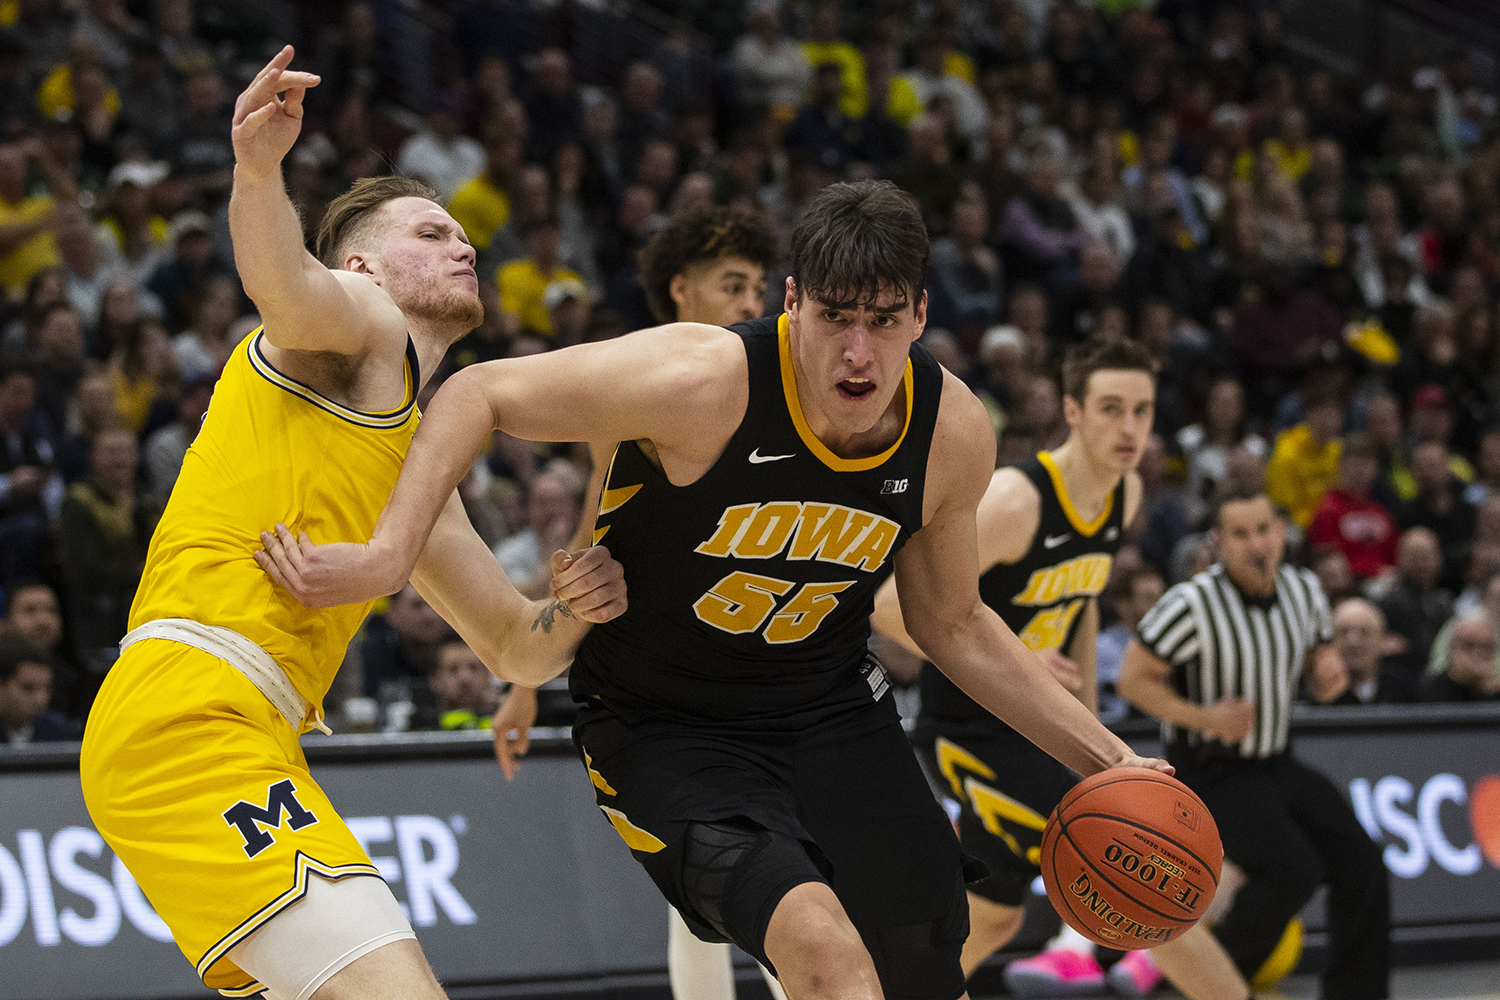 Iowa forward Luka Garza drives to the basket during the Iowa/Michigan Big Ten Tournament men's basketball game in the United Center in Chicago on Friday, March 15, 2019. The Wolverines defeated the Hawkeyes, 74-53.